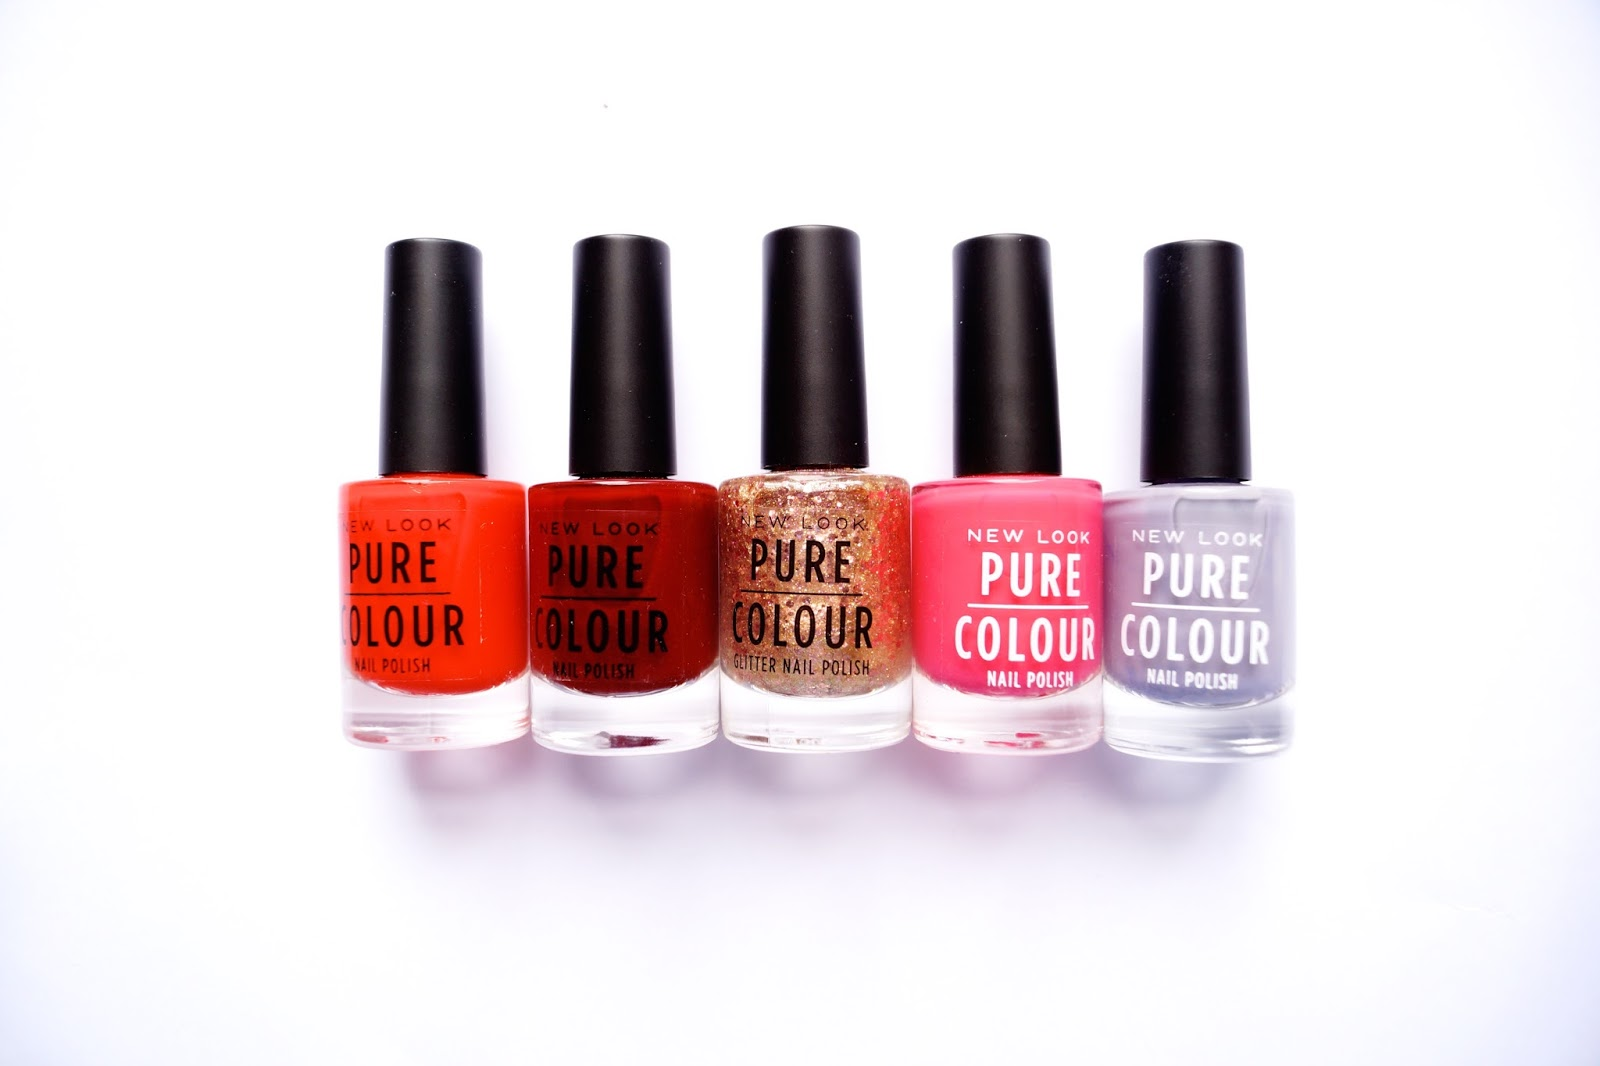 New Look Pure colour nail polish | Style Coverage